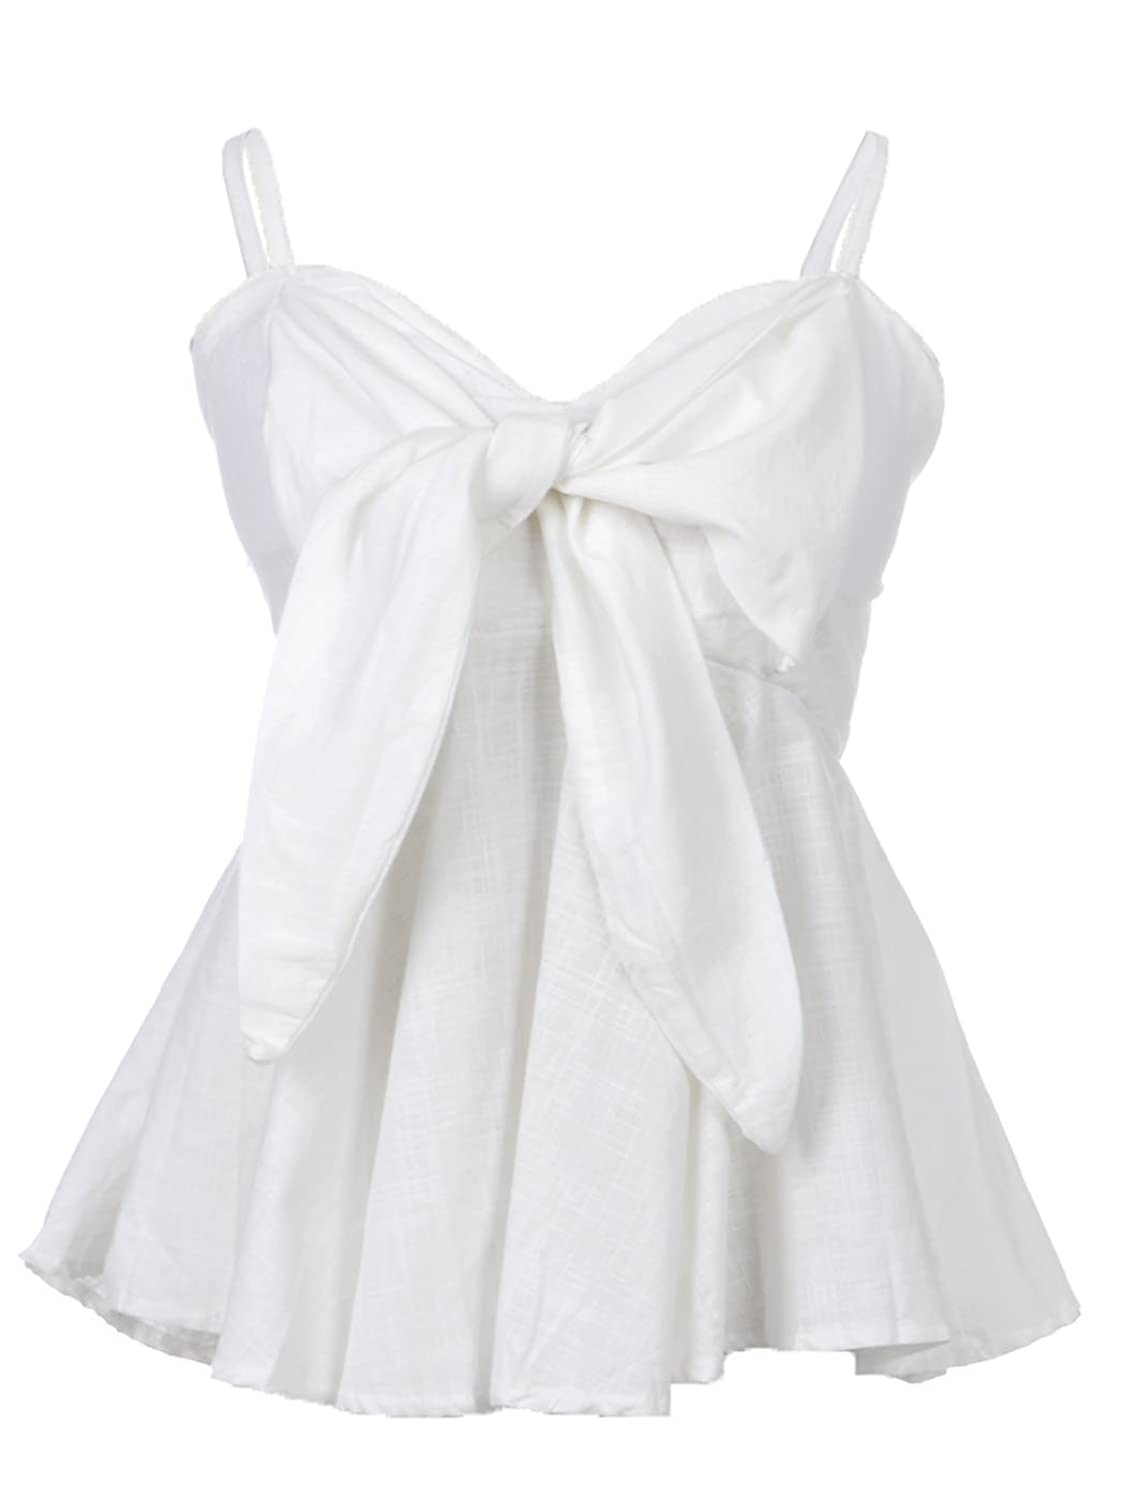 Anna-Kaci Womens White Sweetheart Neckline Bow Trim Peplum Pleat Waist Top